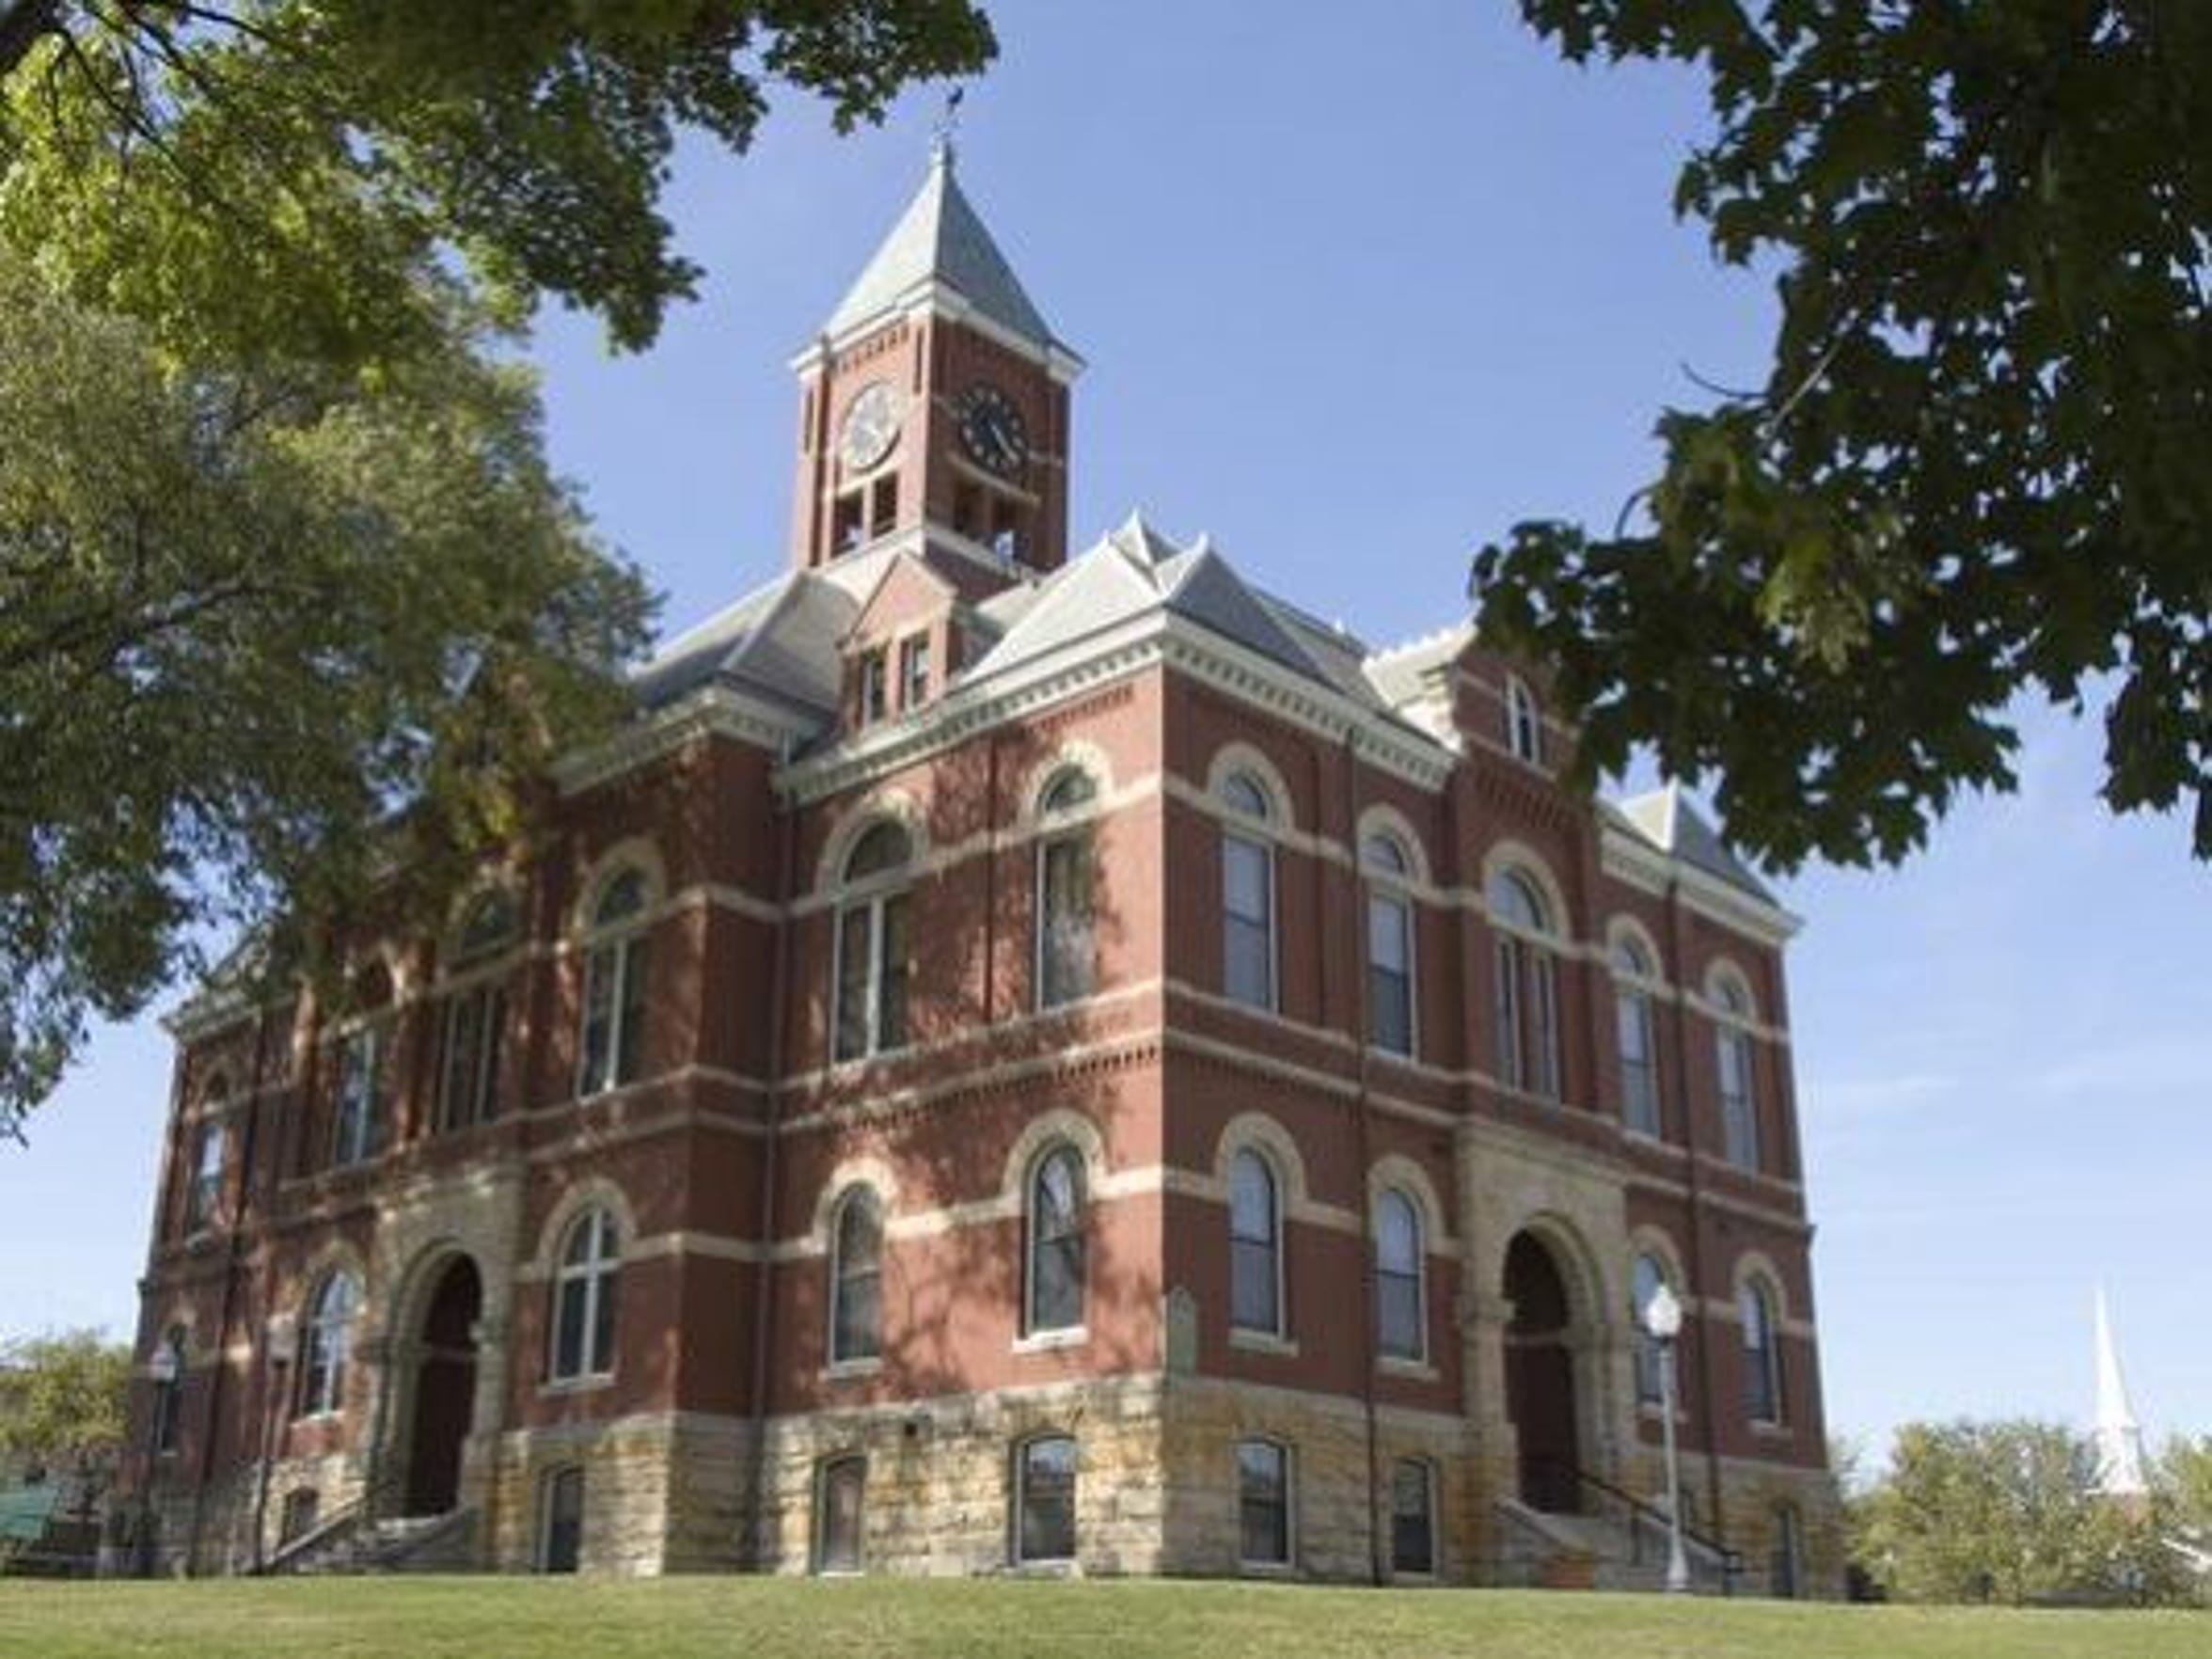 The historic Livingston County Courthouse is on the